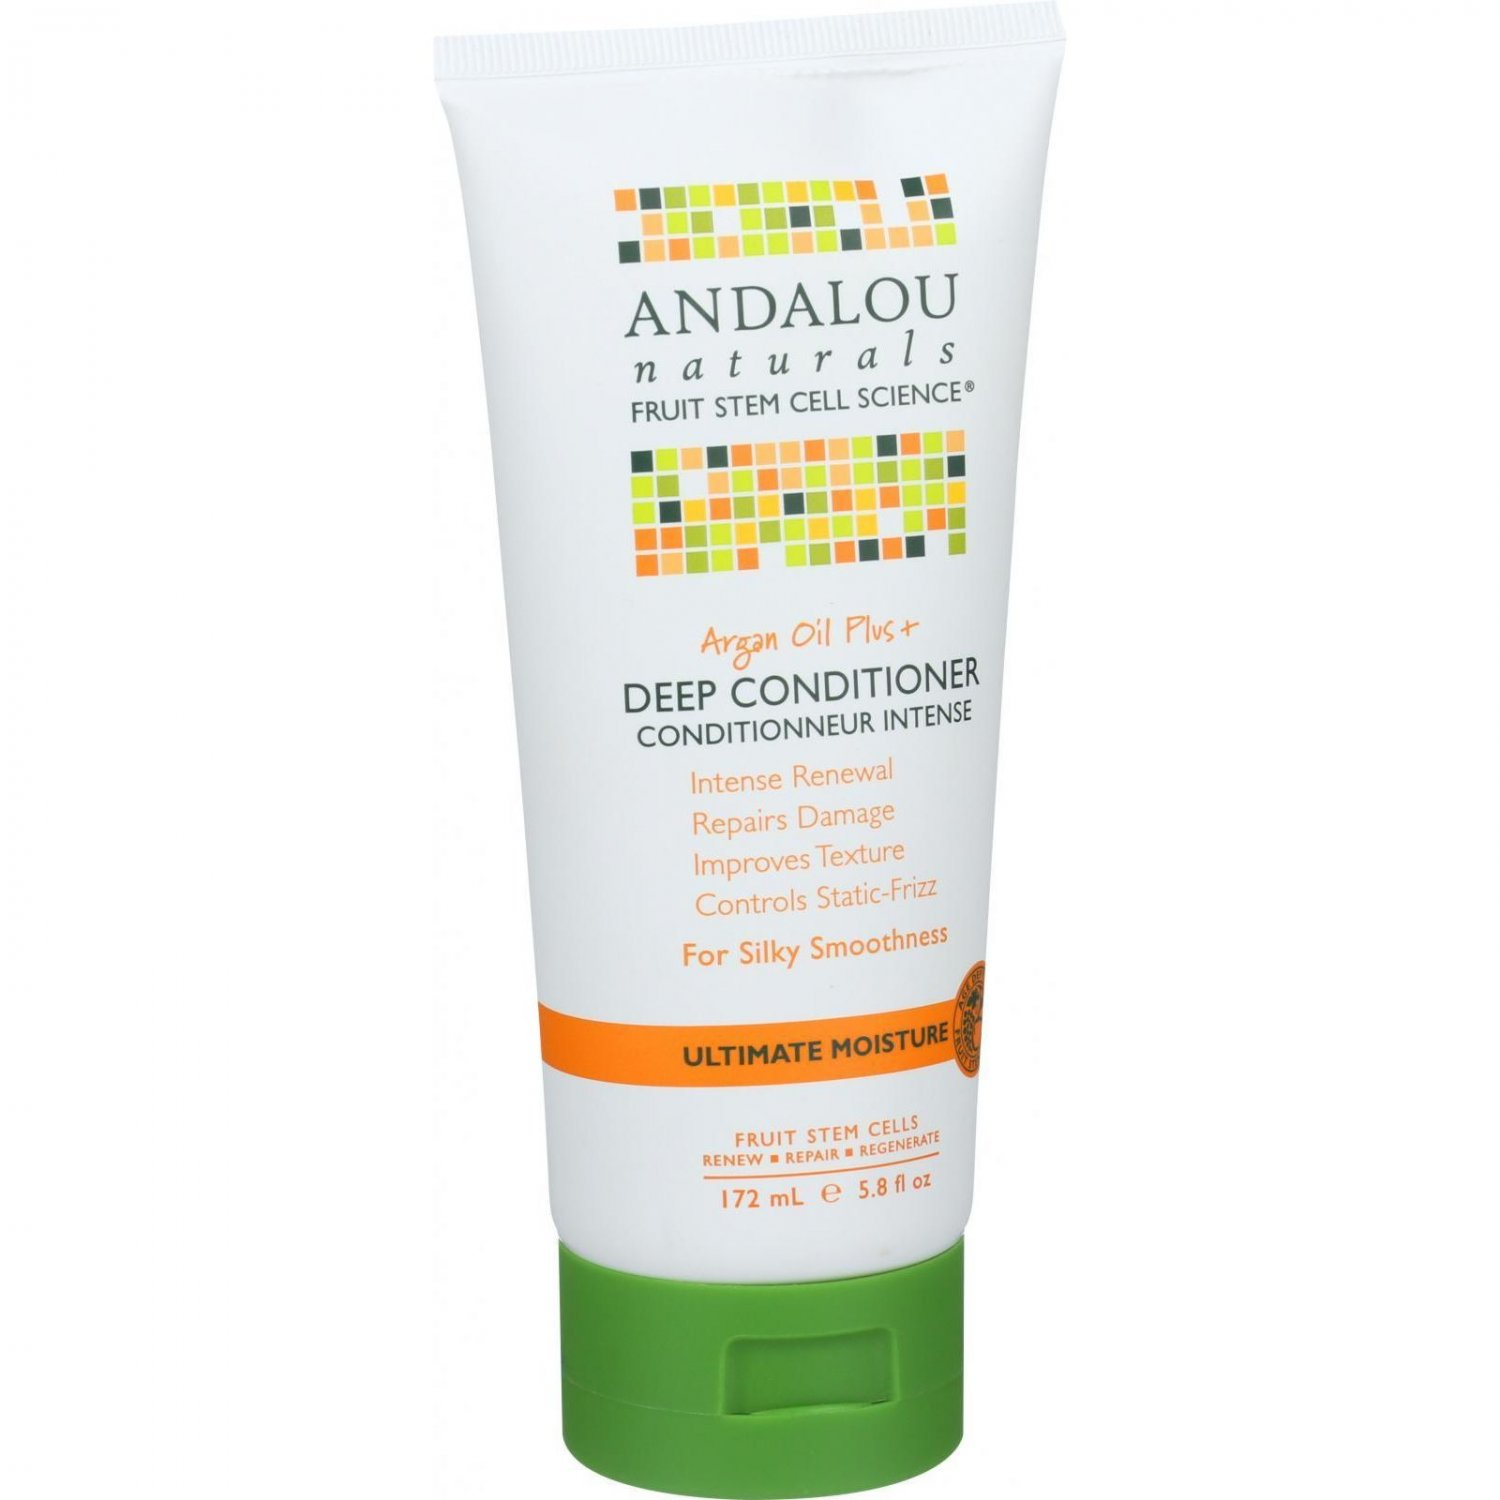 Andalou Naturals Conditioner - Ultimate Moisture Deep - Argan Oil Plus - 6 oz